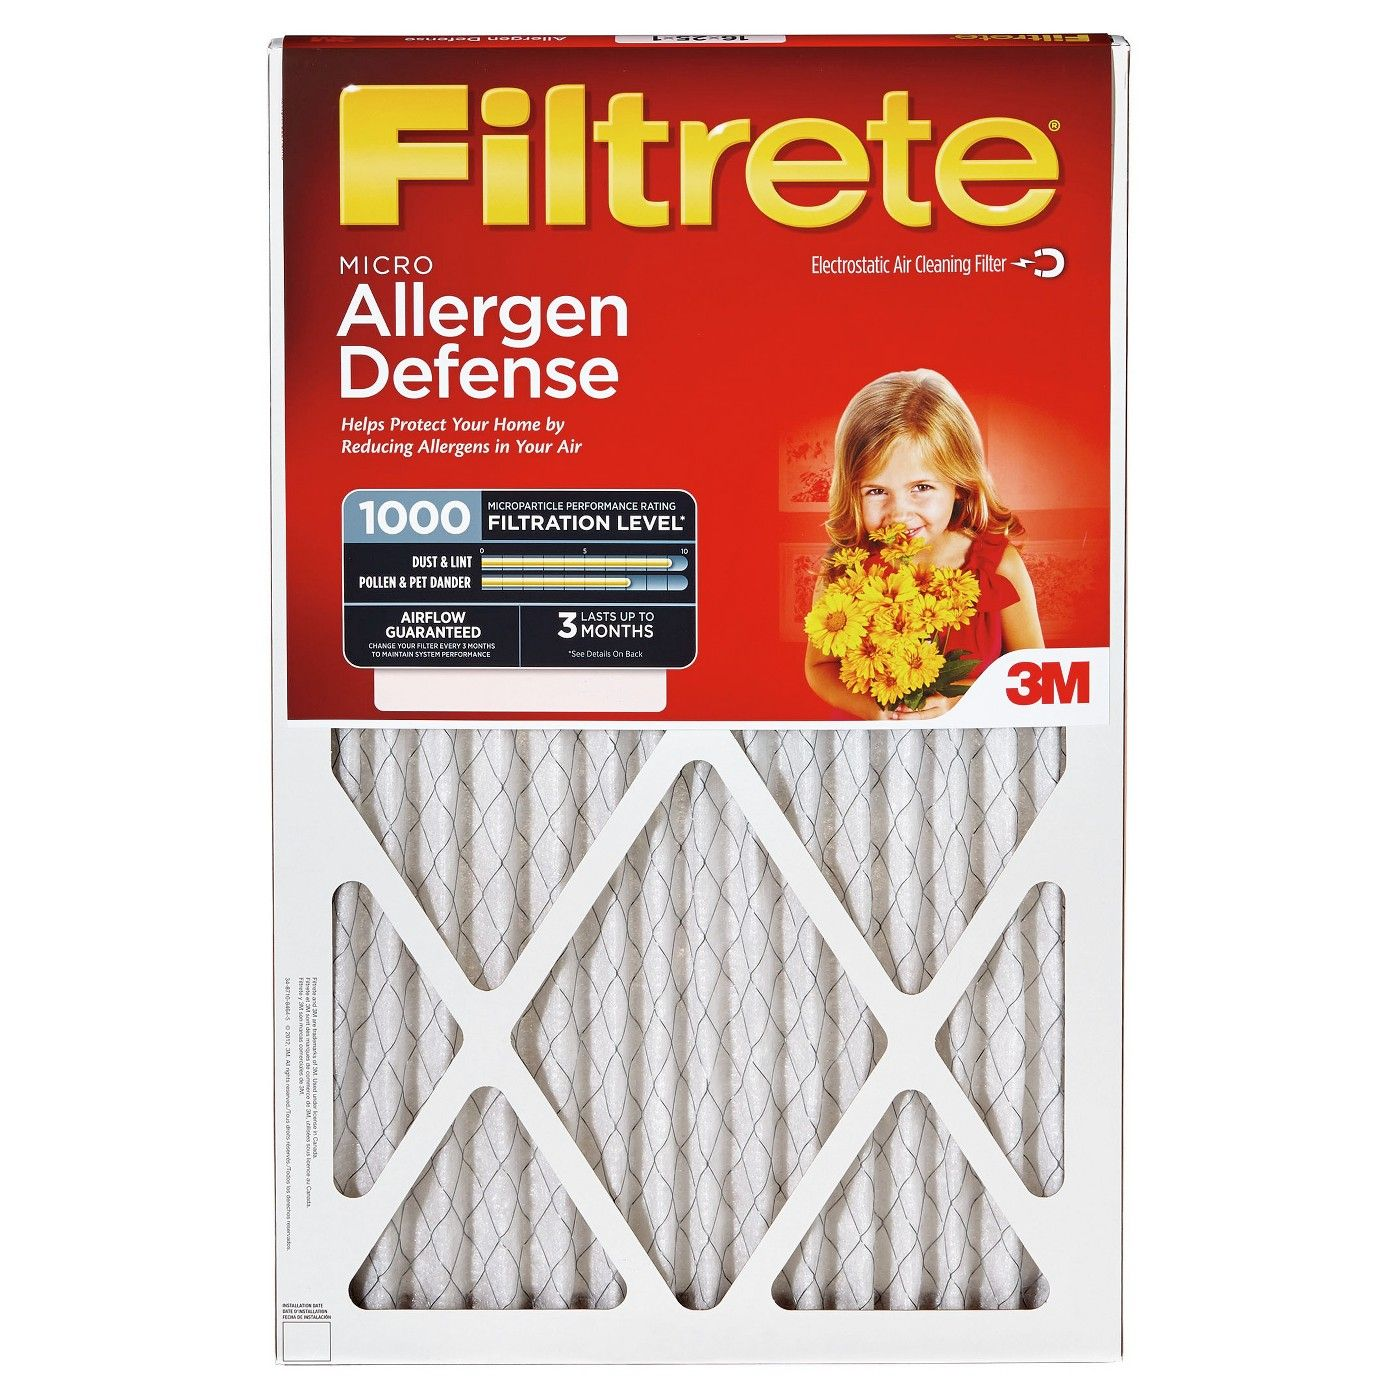 Filtrete Micro Allergen, 2pk 20X20, Air Filter Air